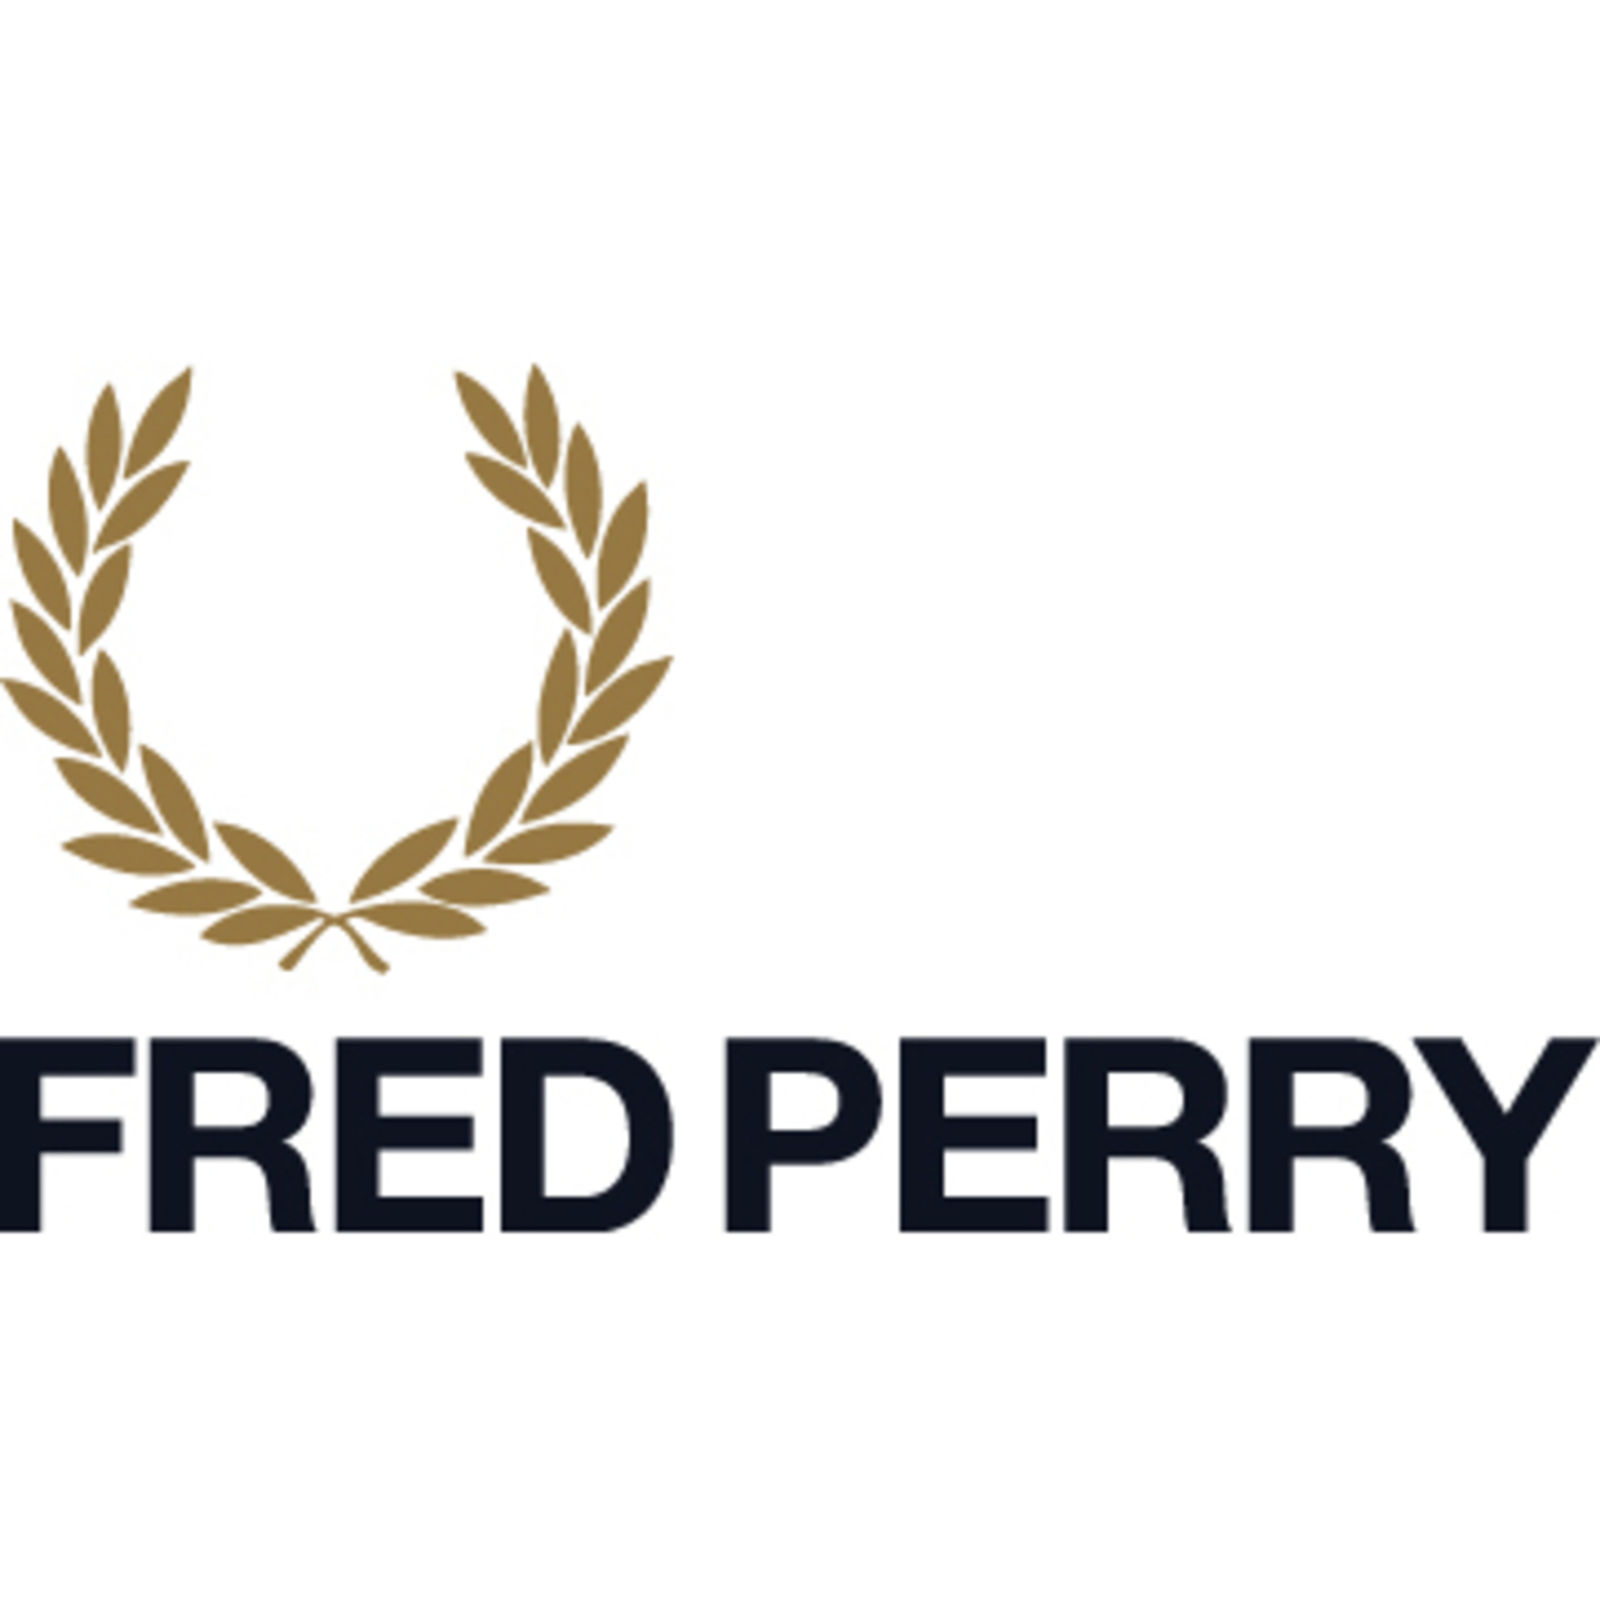 FRED PERRY Authentic | BRADLEY WIGGINS (Image 1)